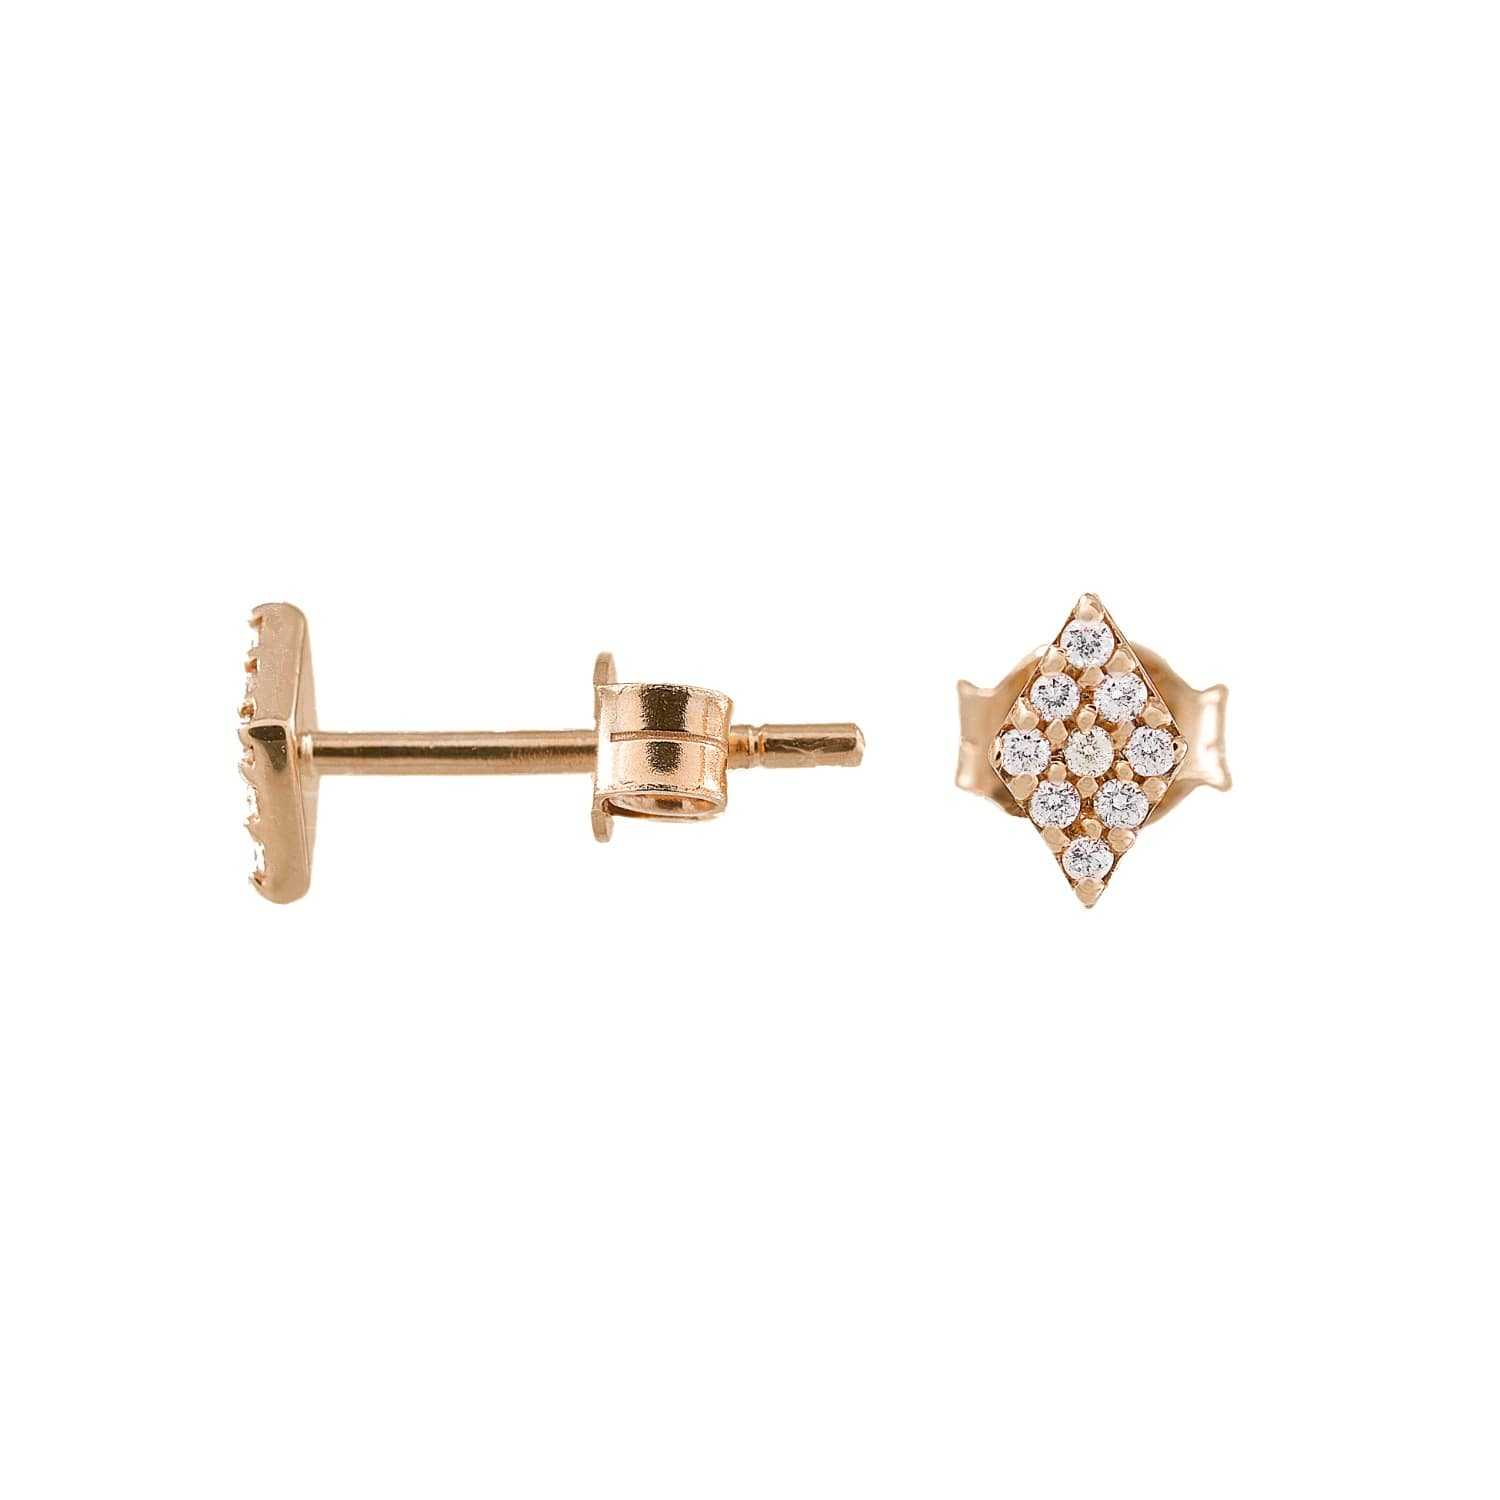 Jezebel London 14kt Rose Gold & Diamond Duke Stud Earring